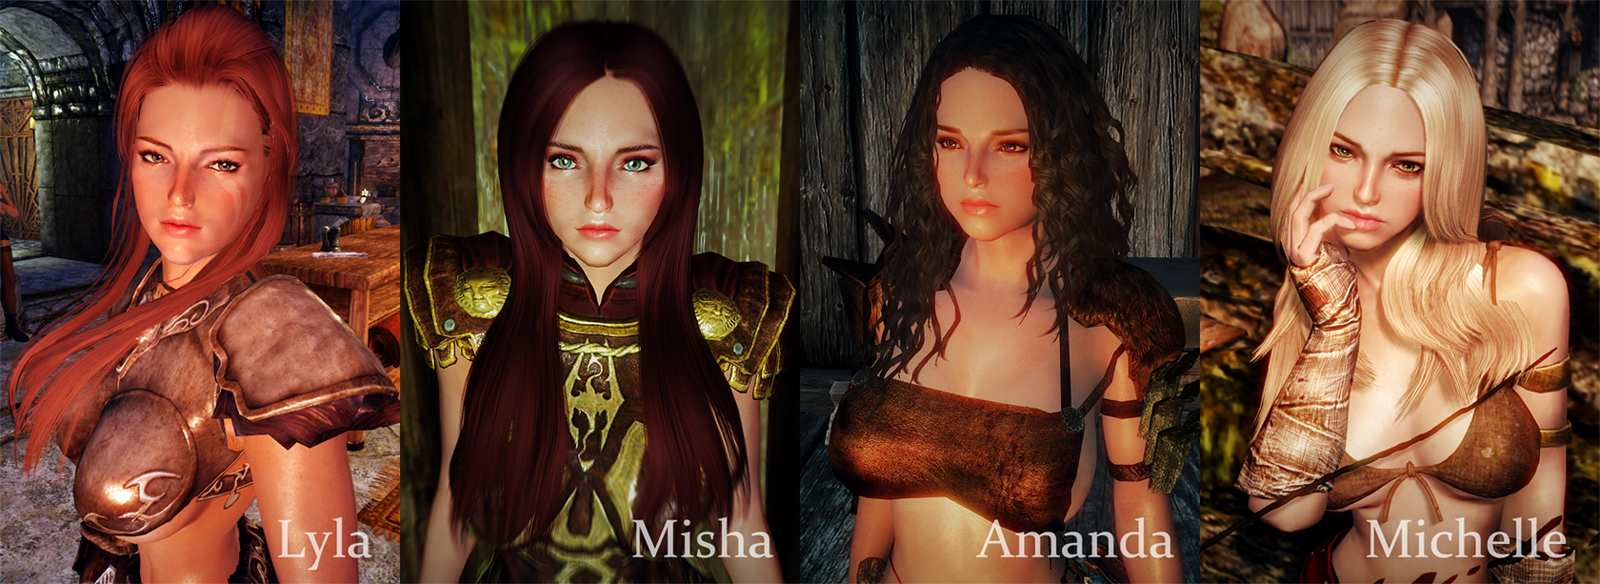 Hot Skyrim Girl Mods